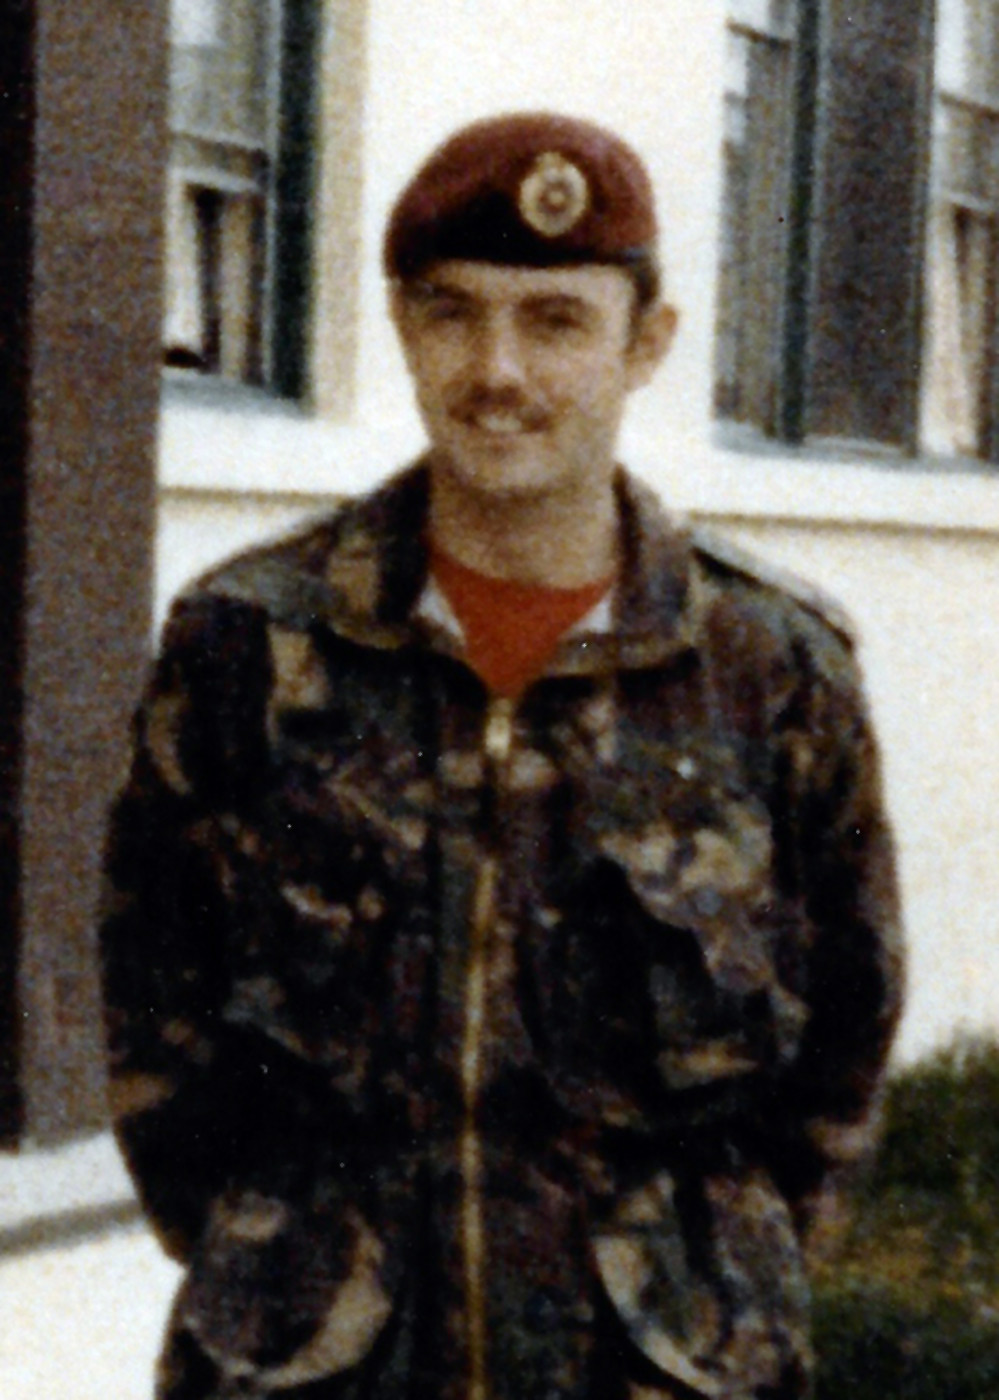 A 27 year-old Corporal Randy Rice serving with 2 Troop Combat Engineer in Petawawa in 1980.